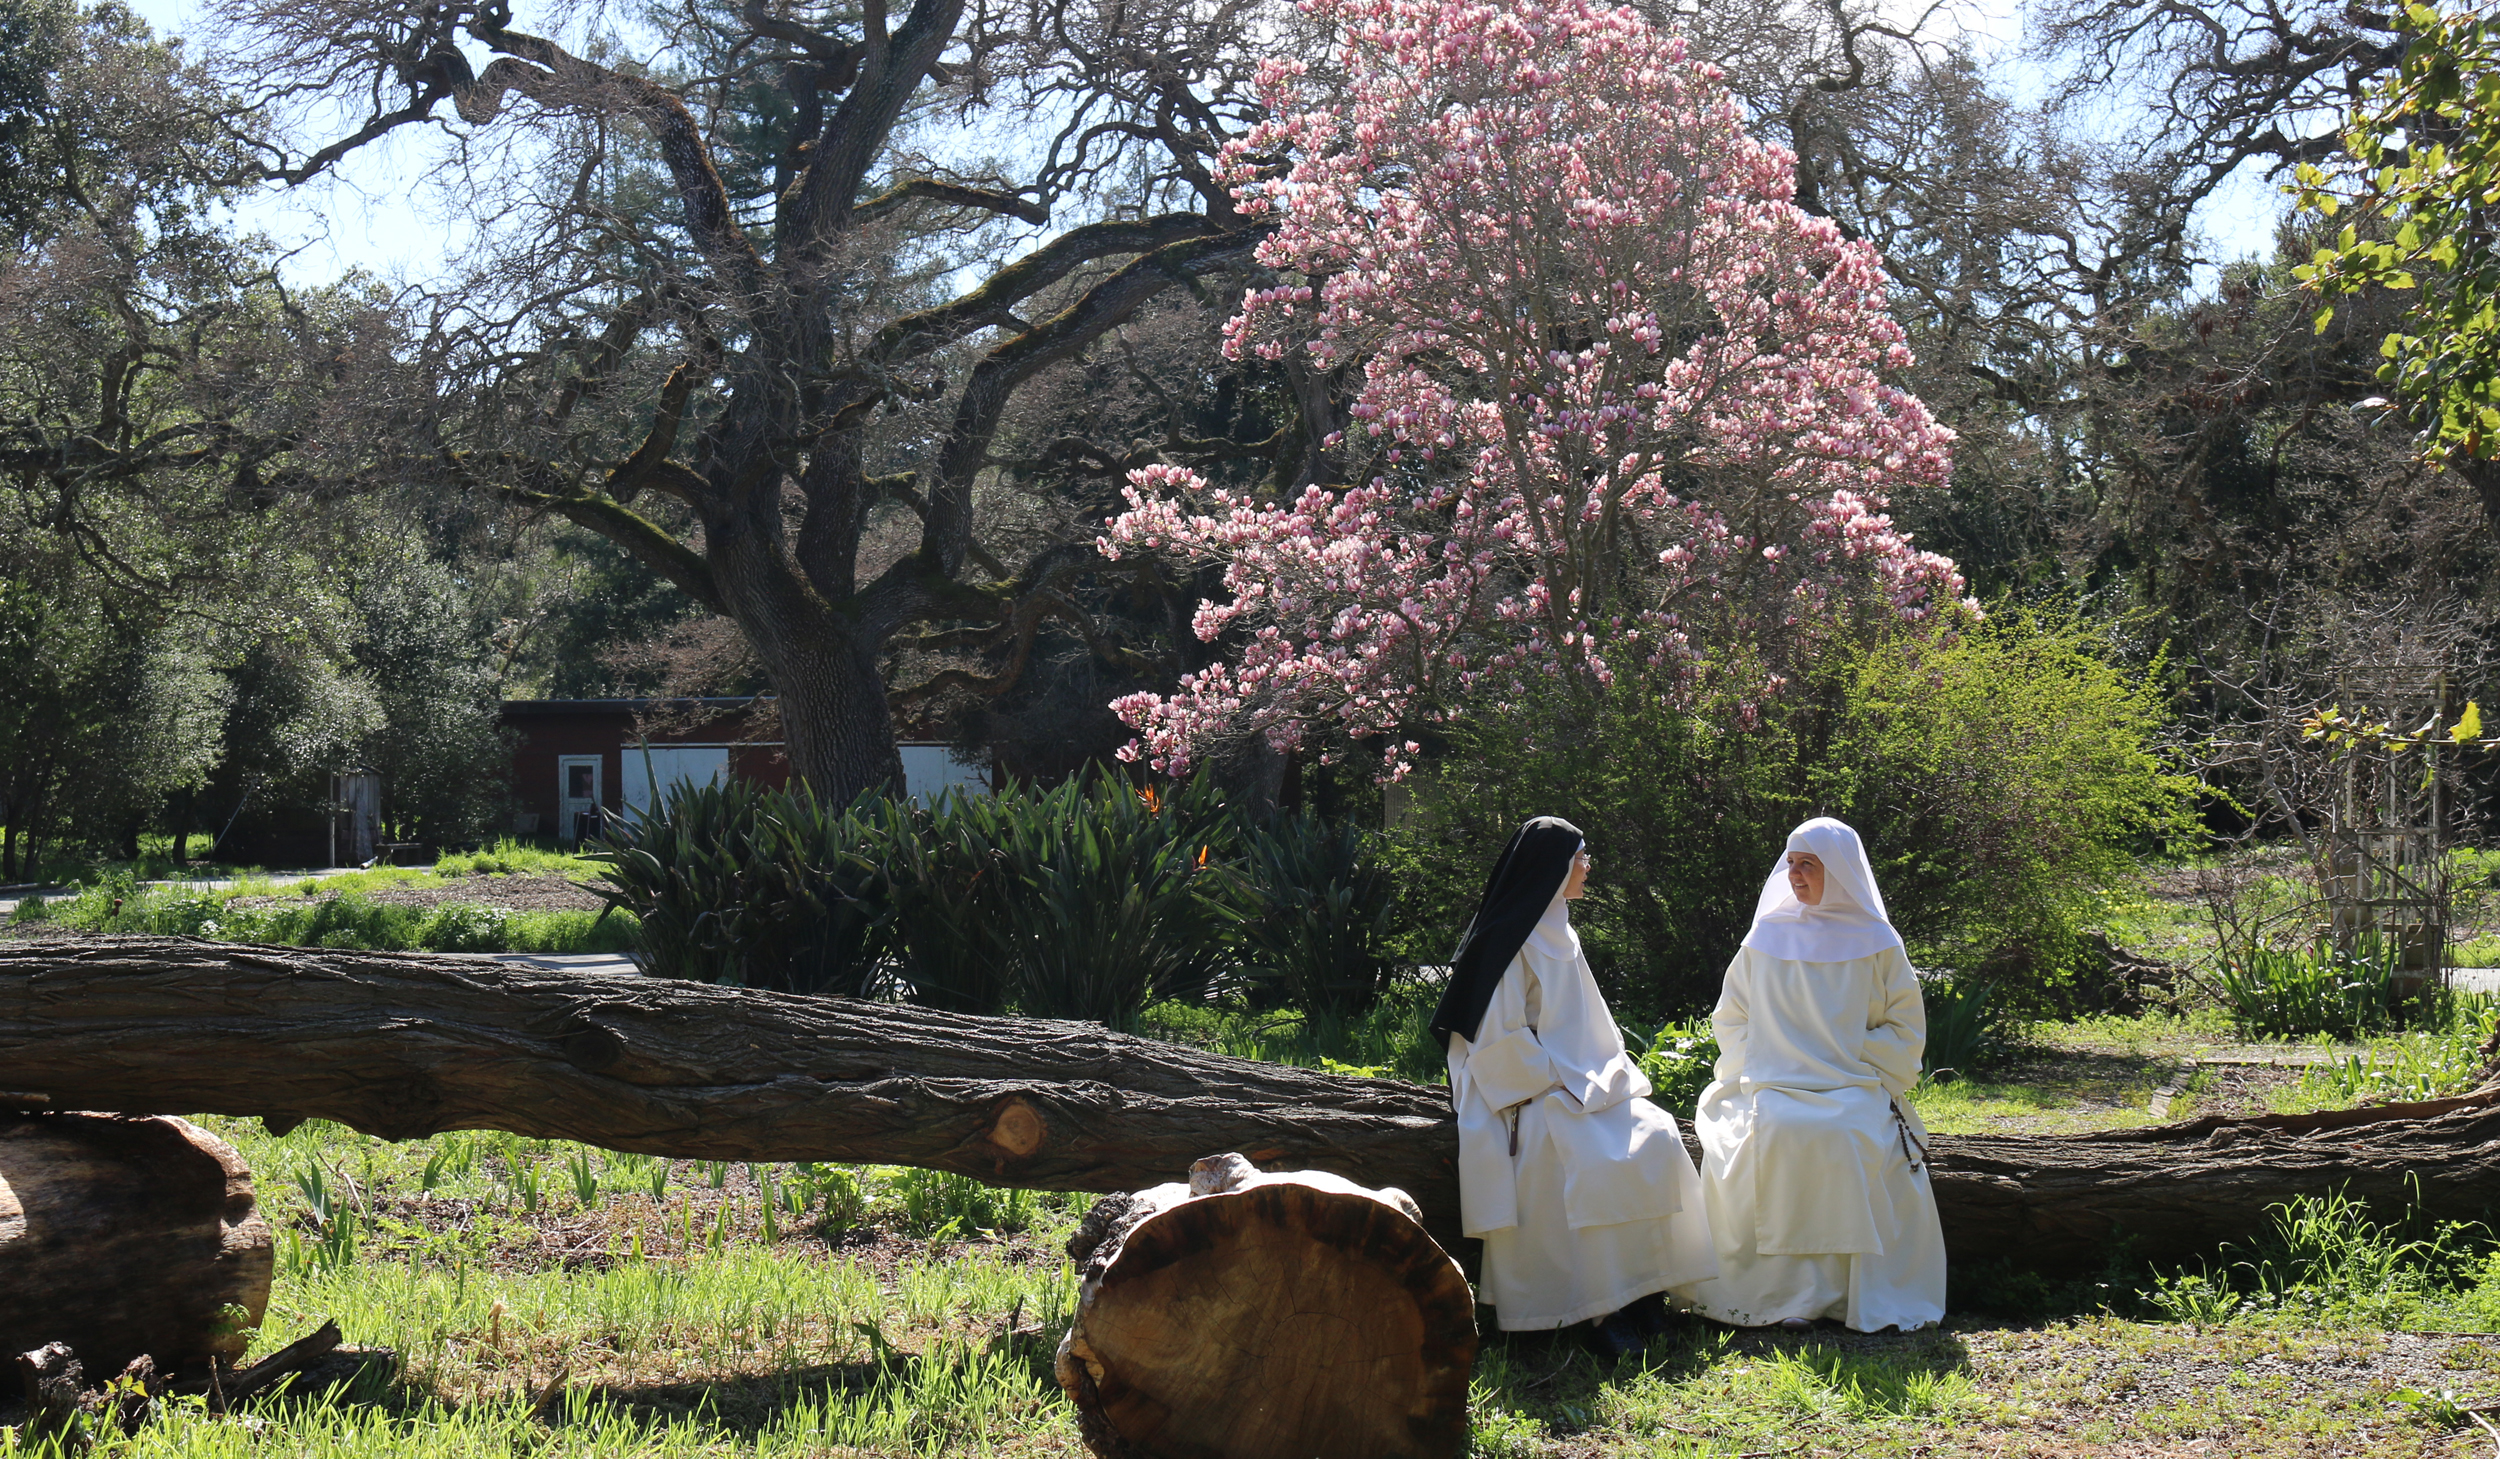 is jesus calling you? - Think you might be called to give yourself to Jesus and His mission as a Dominican nun? Come and see.